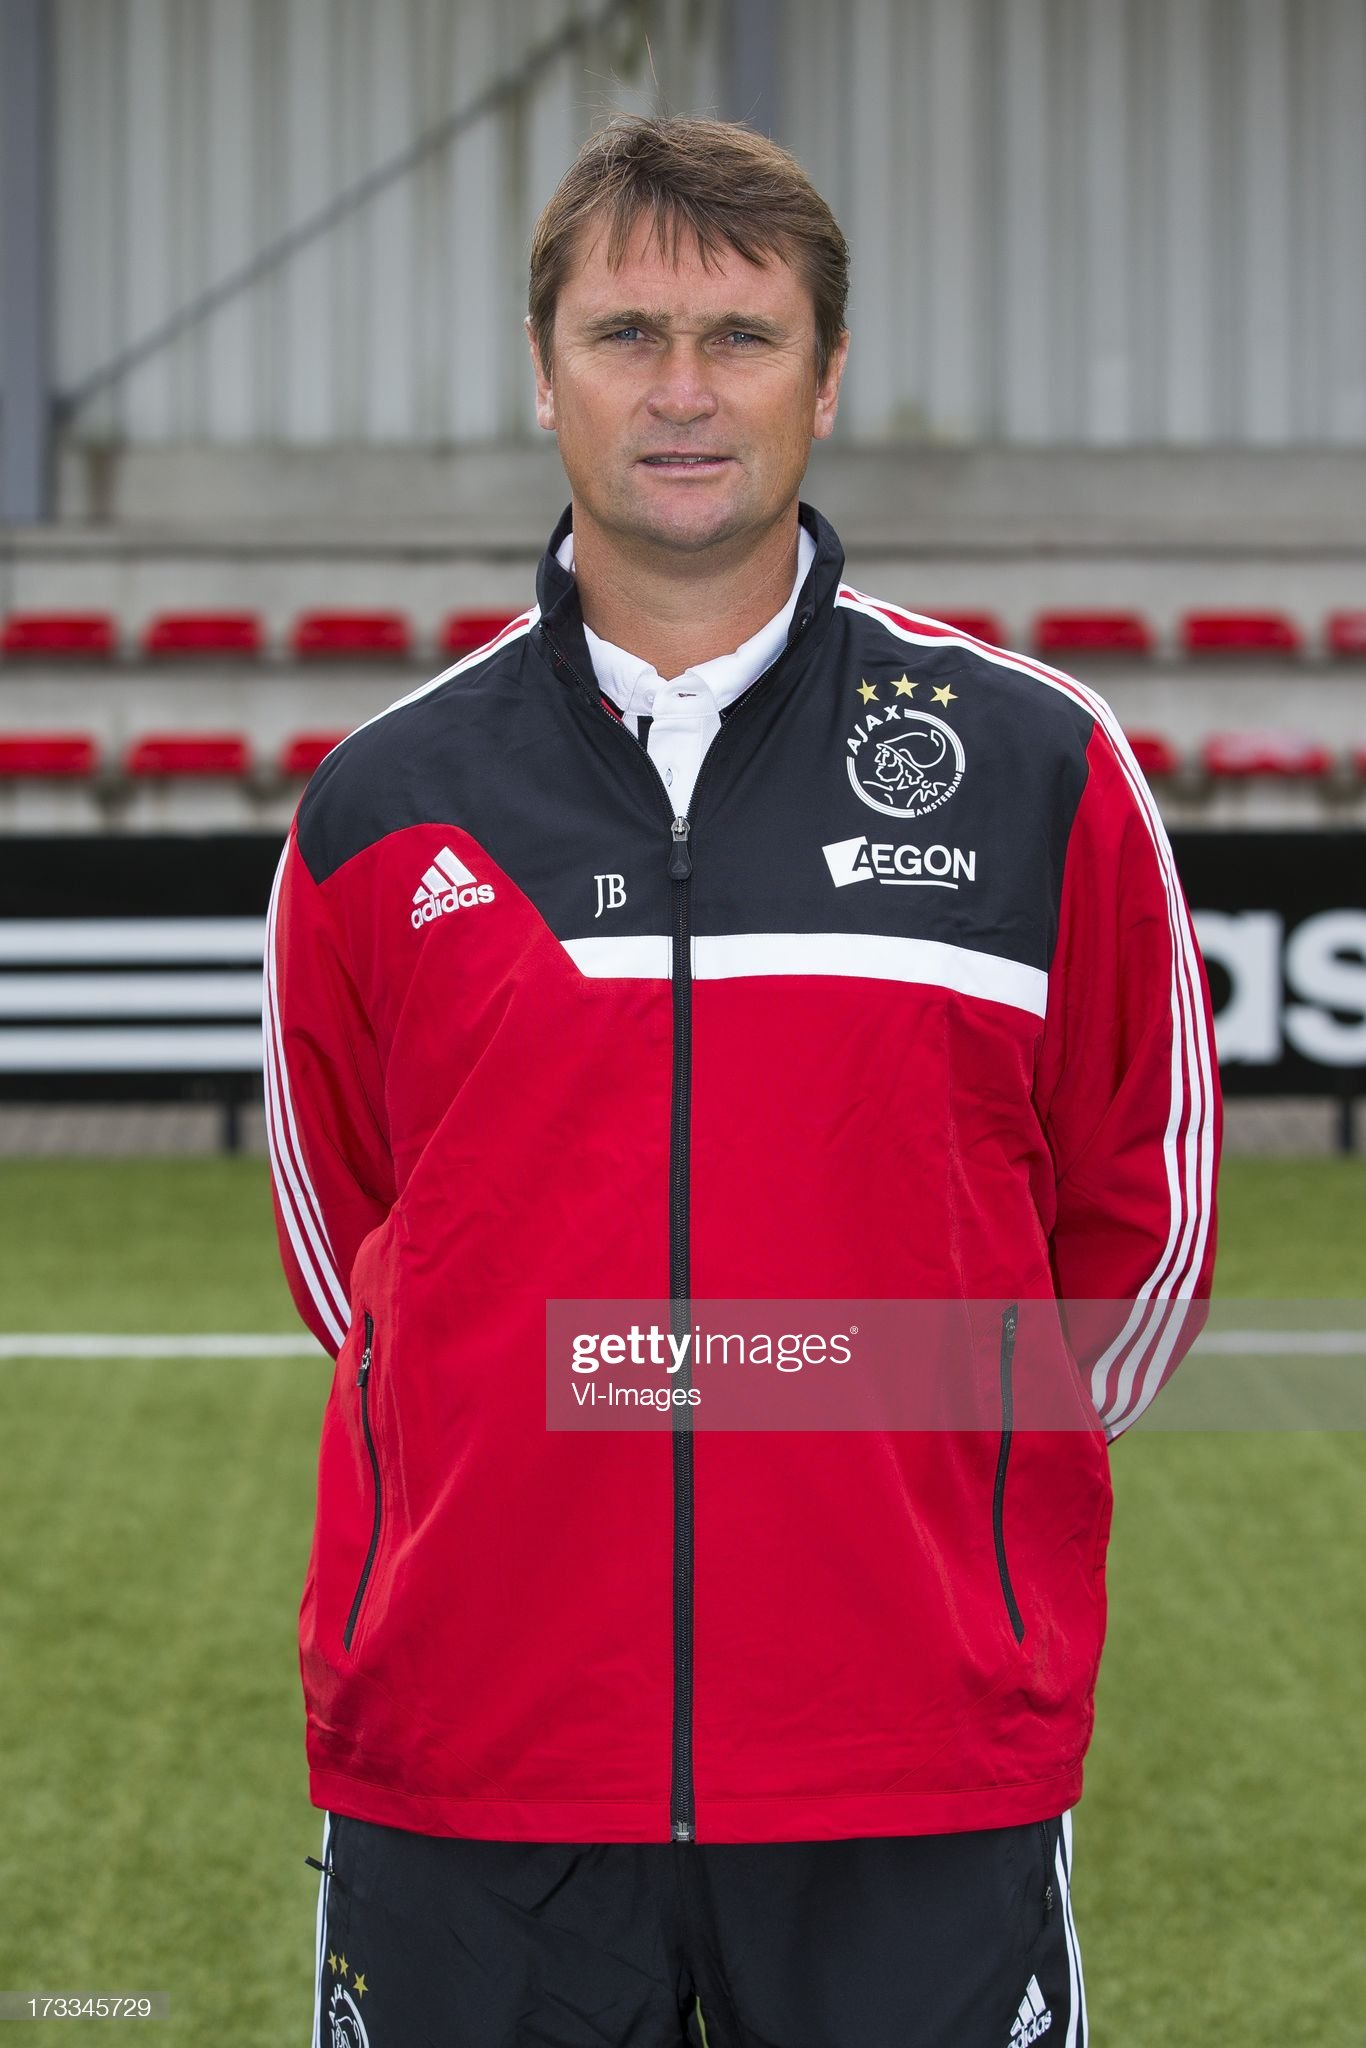 https://media.gettyimages.com/photos/assistant-trainer-john-bosman-of-jong-ajax-during-the-team-of-ajax-picture-id173345729?s=2048x2048